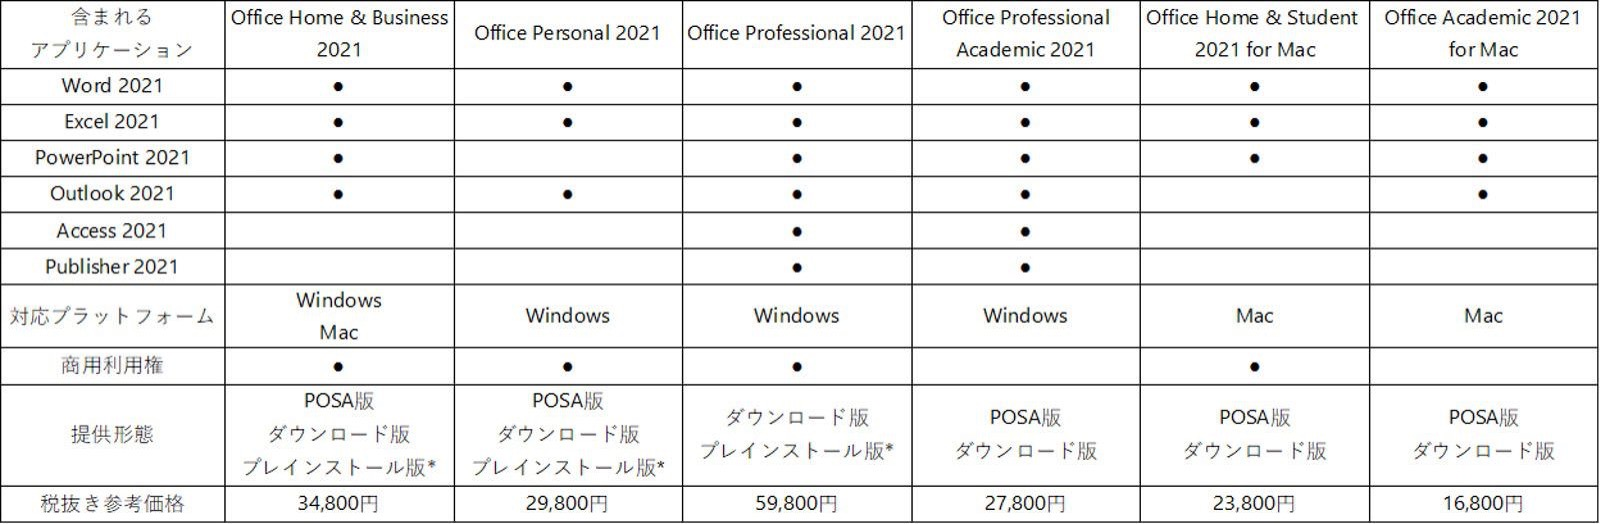 Office 2021 pricing 1